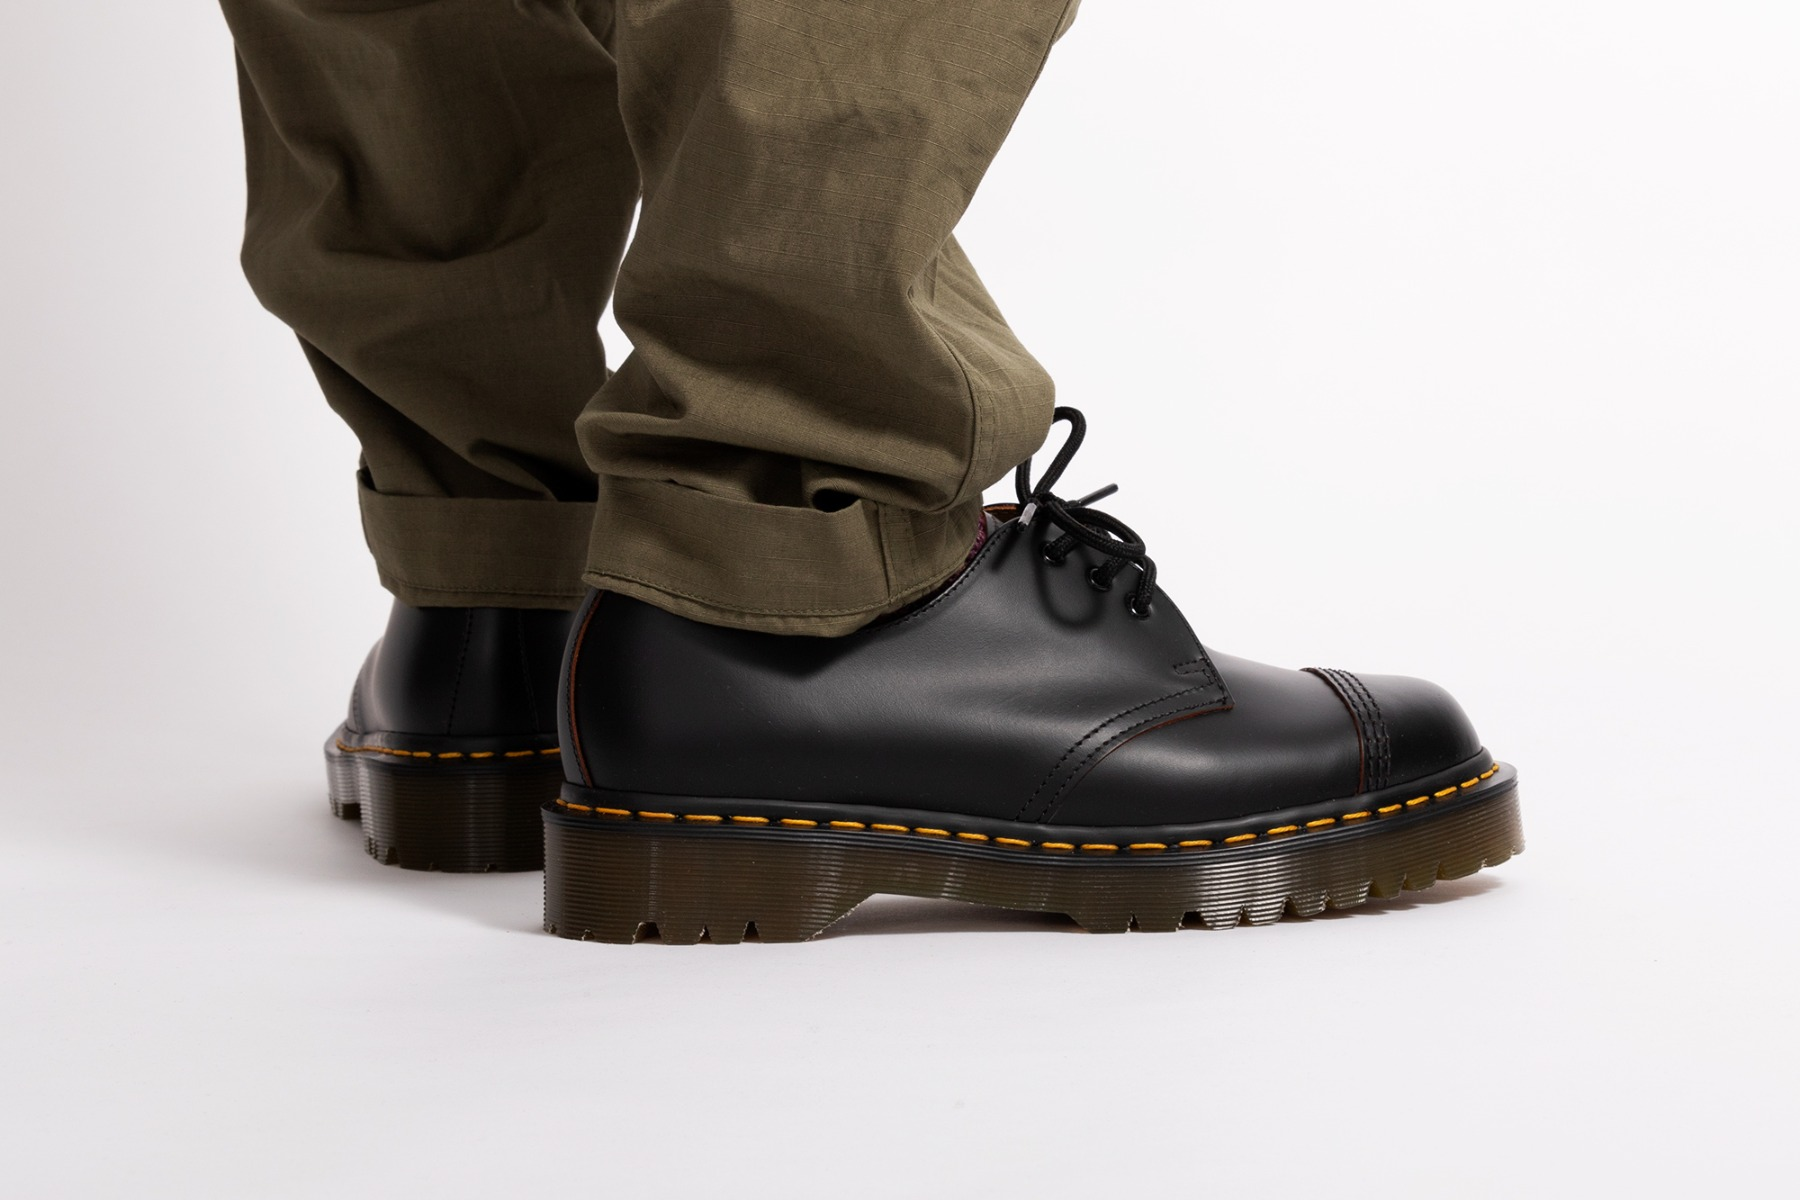 dr martens 1461 bex toe made in england shoe